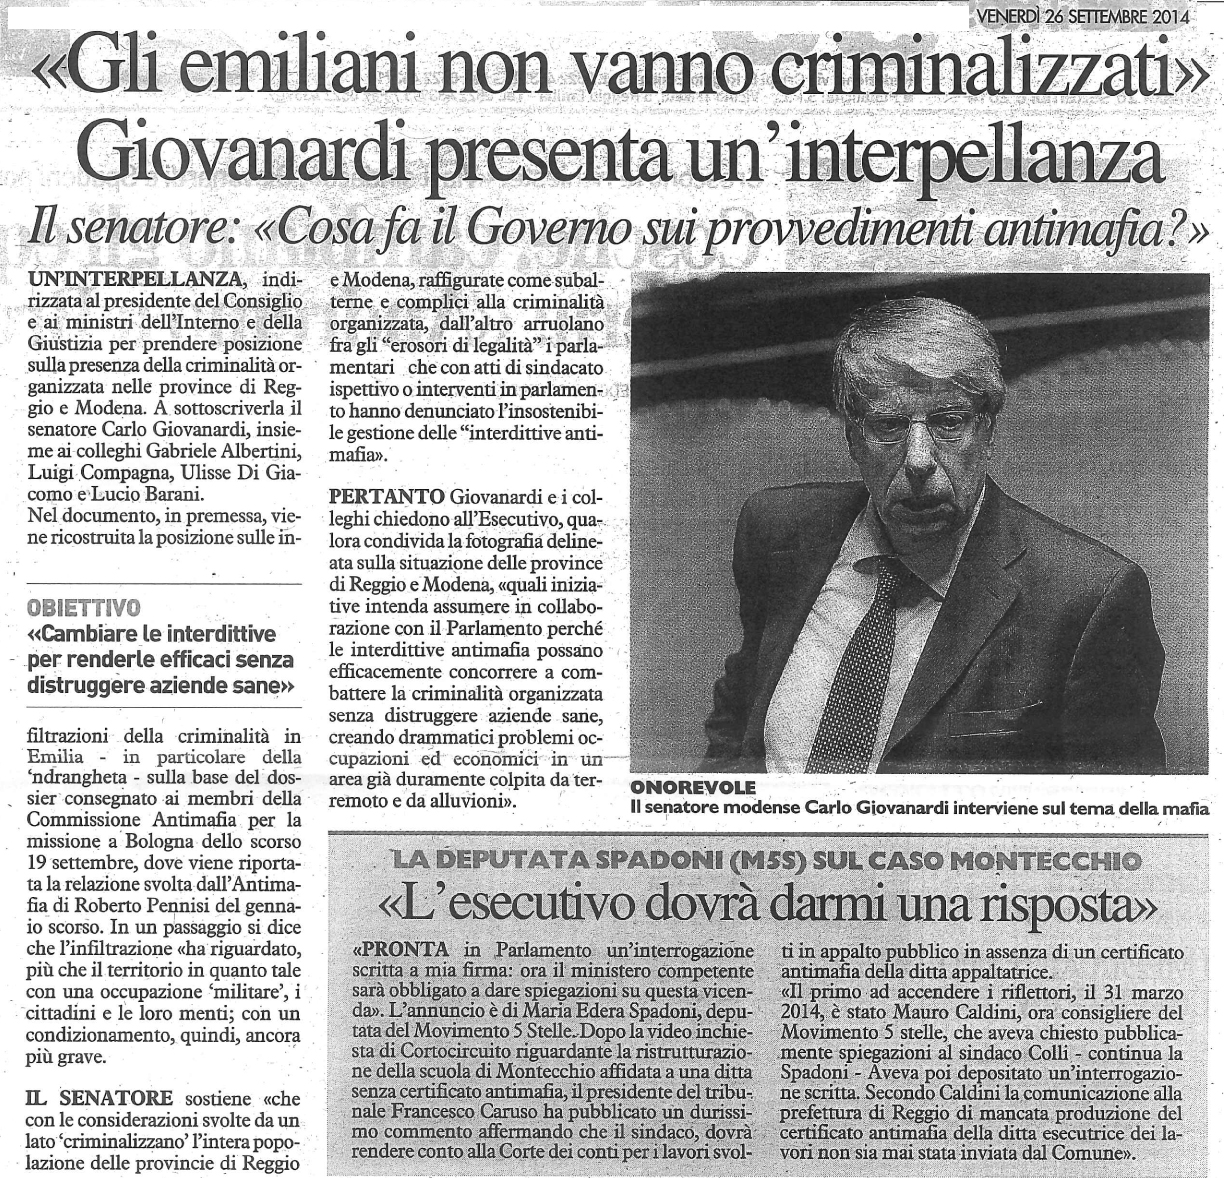 Giovanardi e l'interpellanza